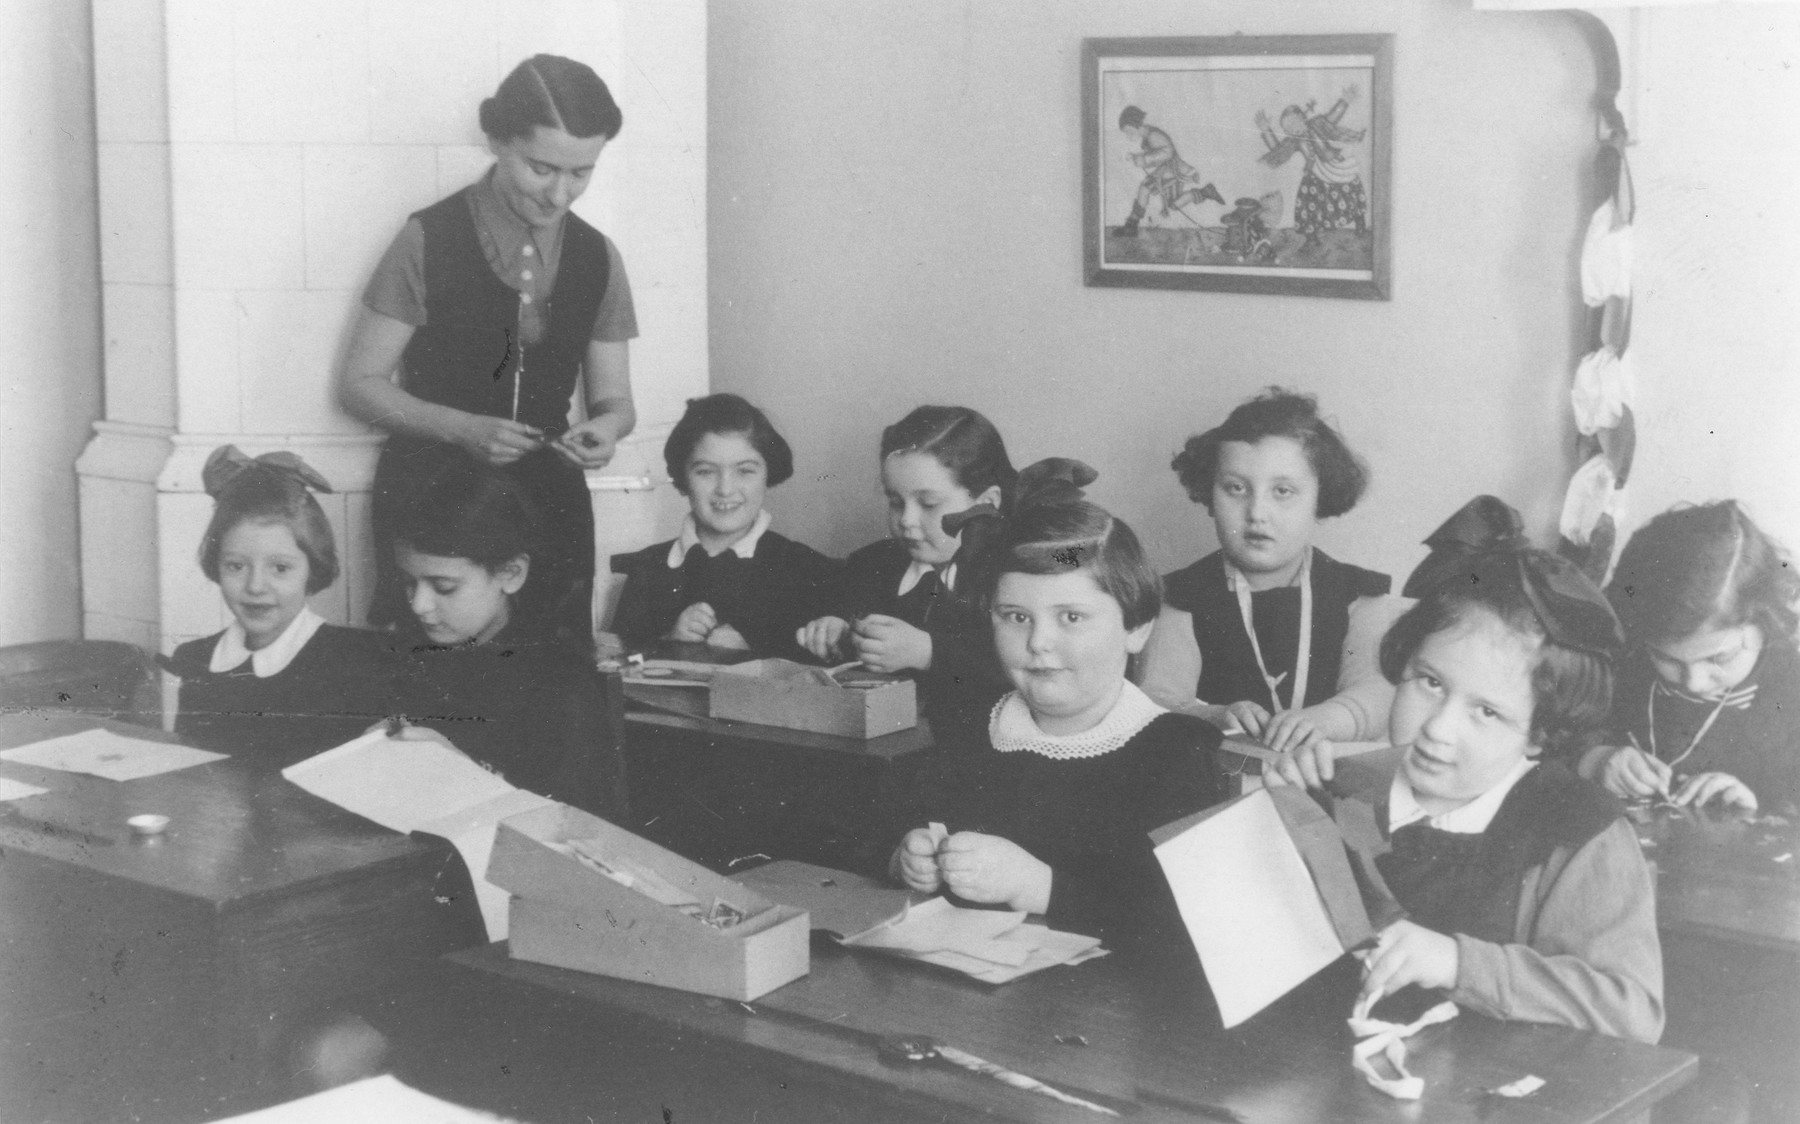 Pupils in the second grade work in their classroom at the Kalecka Jewish elementary school in Warsaw.  Among those pictured is Basia Berkowicz (front row, second from the left).